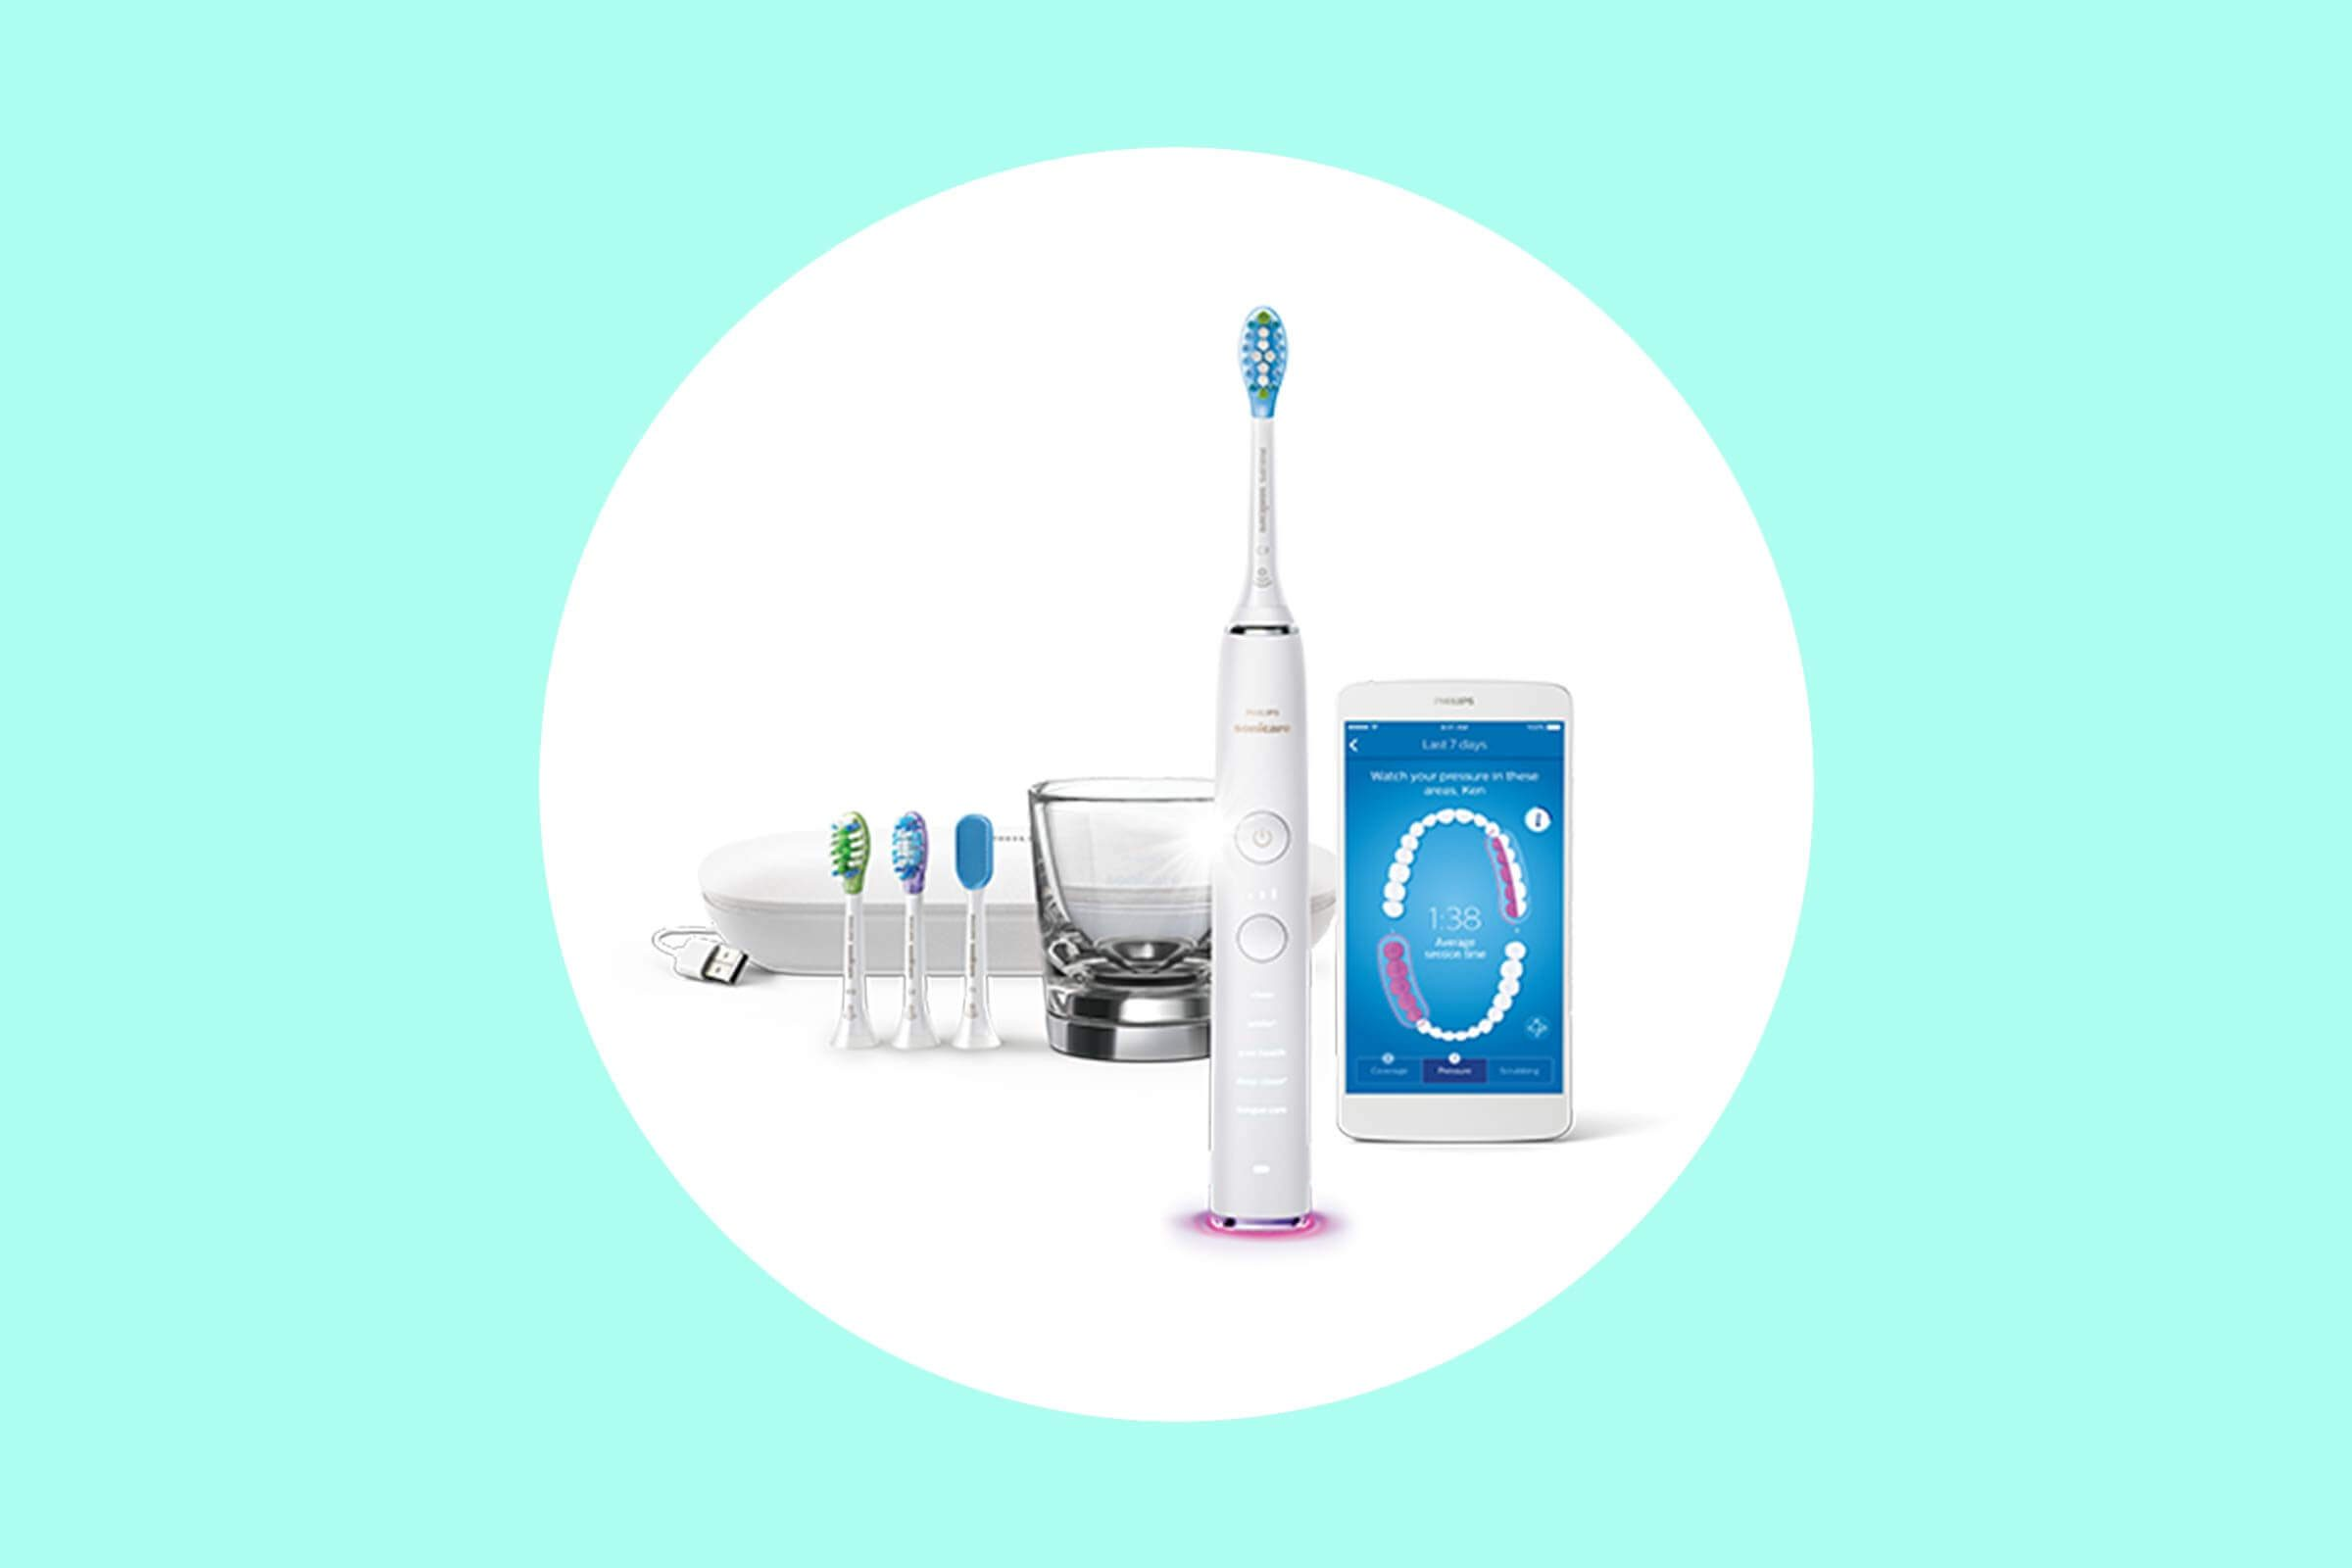 Philips Sonicare DiamondClean toothbrush with multiple brush heads.